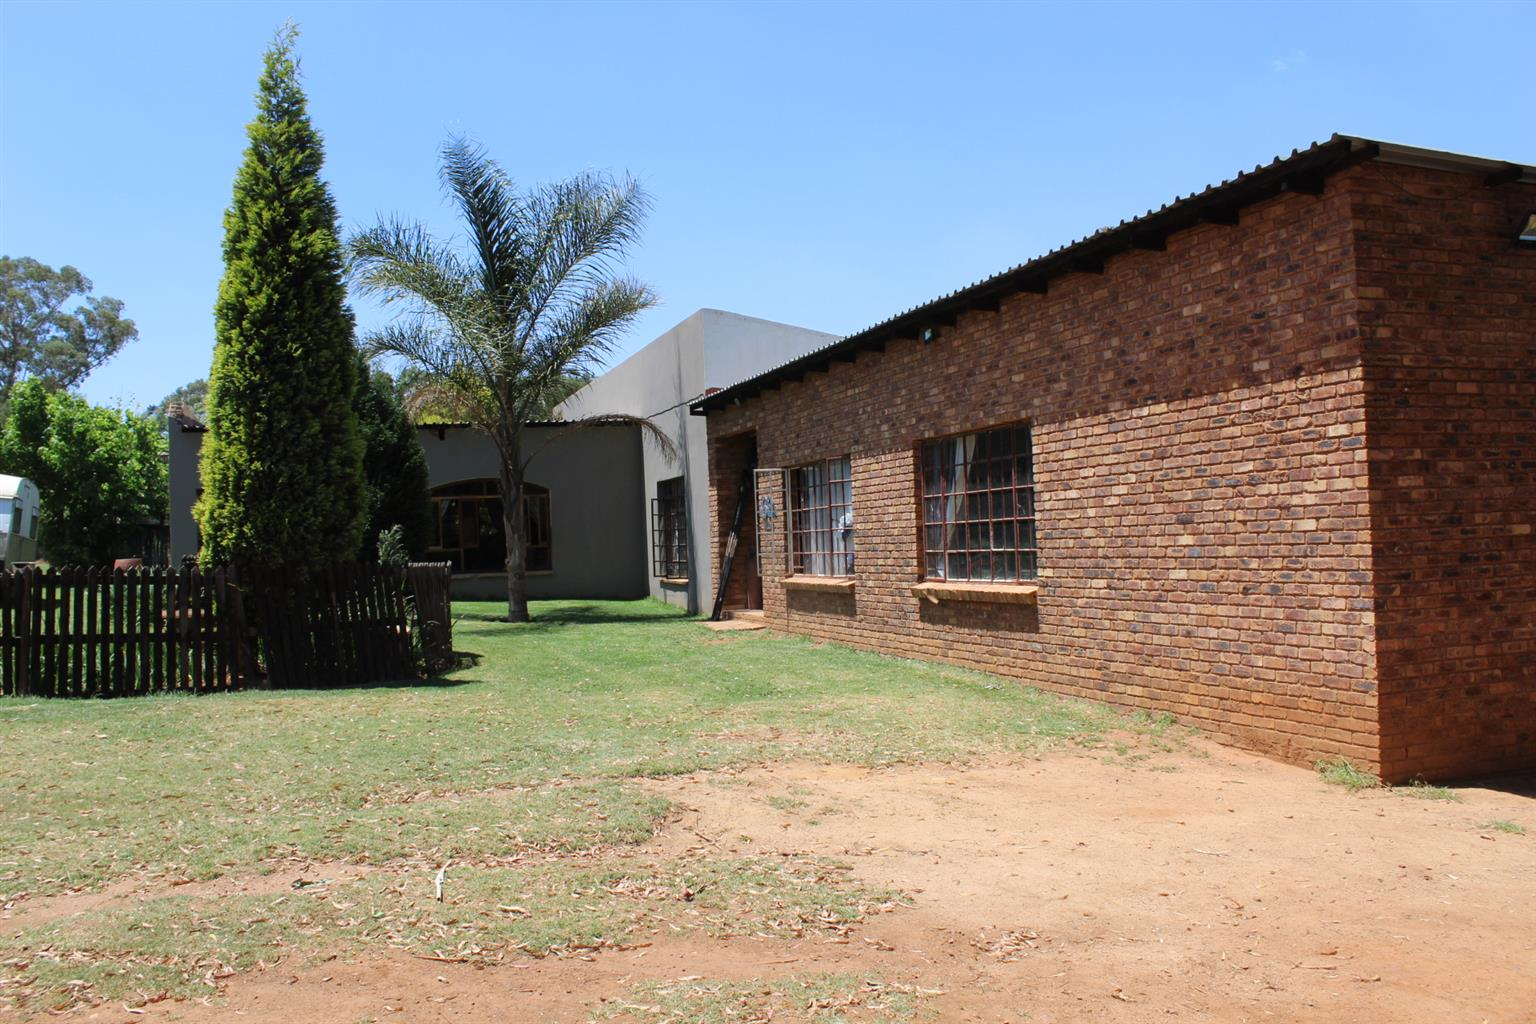 BENONI-PUTFONTEIN-1.8 Ha HOUSE-SHOPS-72 STOREAGE  UNITS- 3 MINI FACTORIES-VERY BUZY AREA